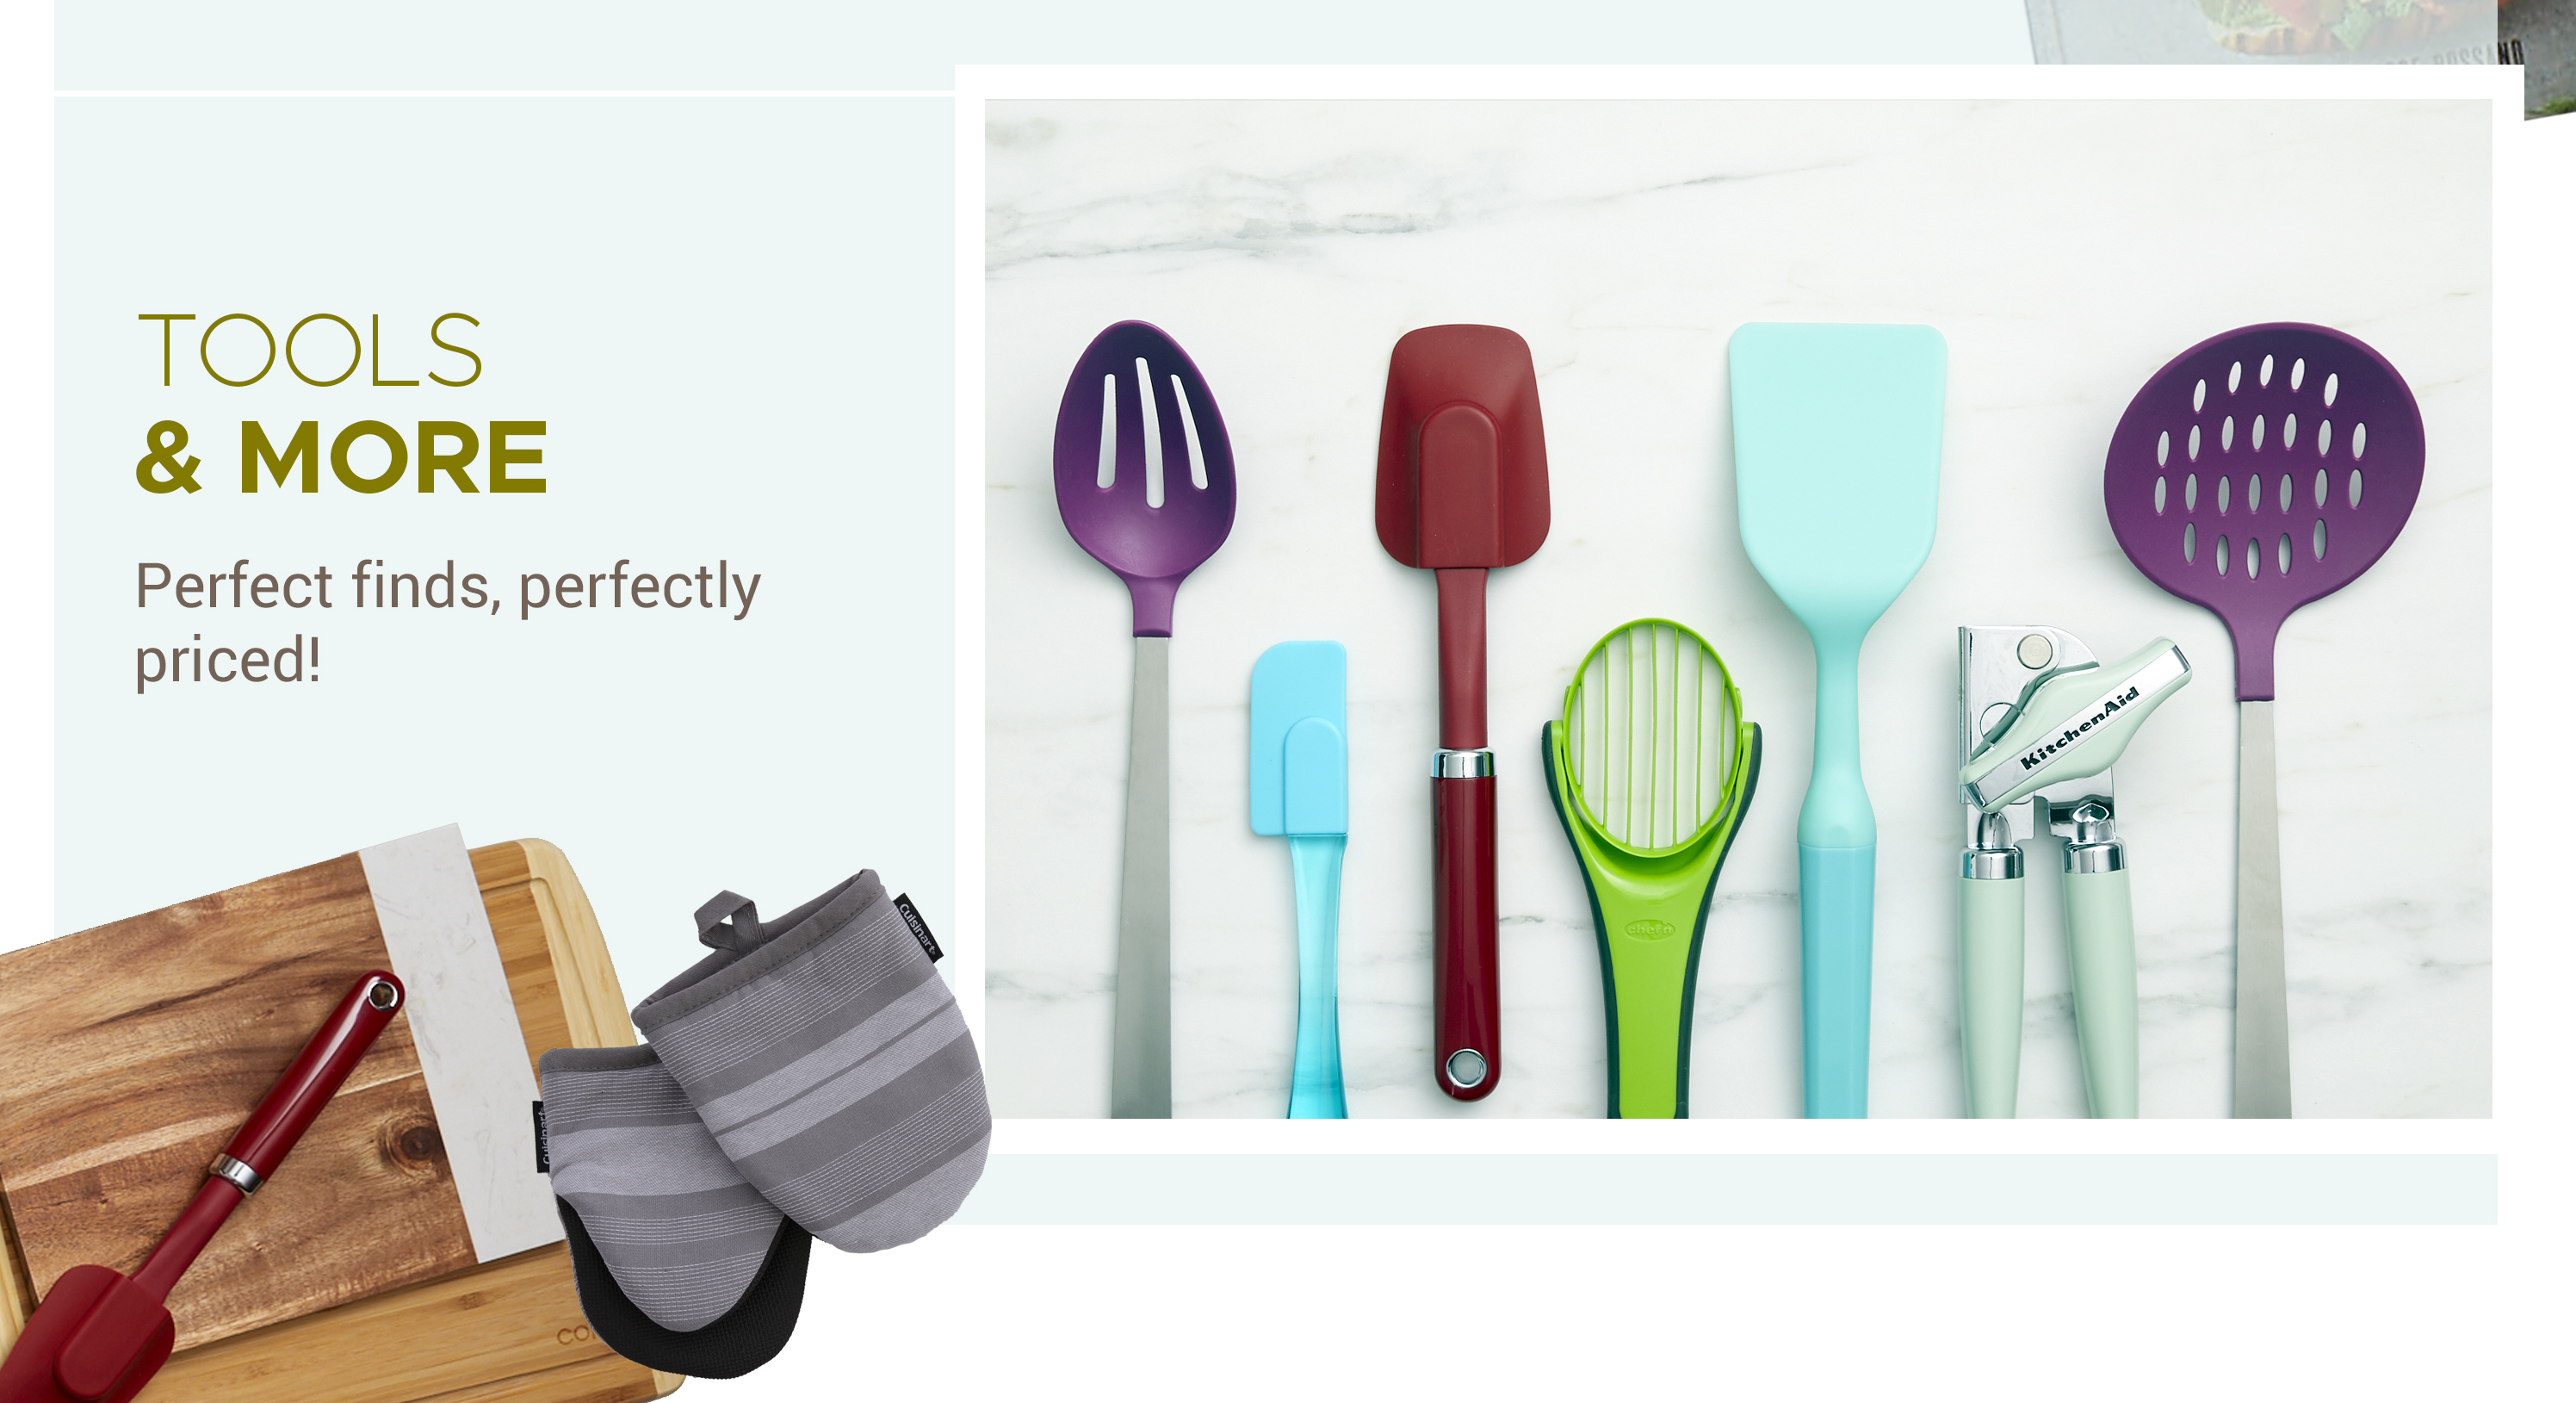 Tools & More - Perfect finds, perfectly priced!